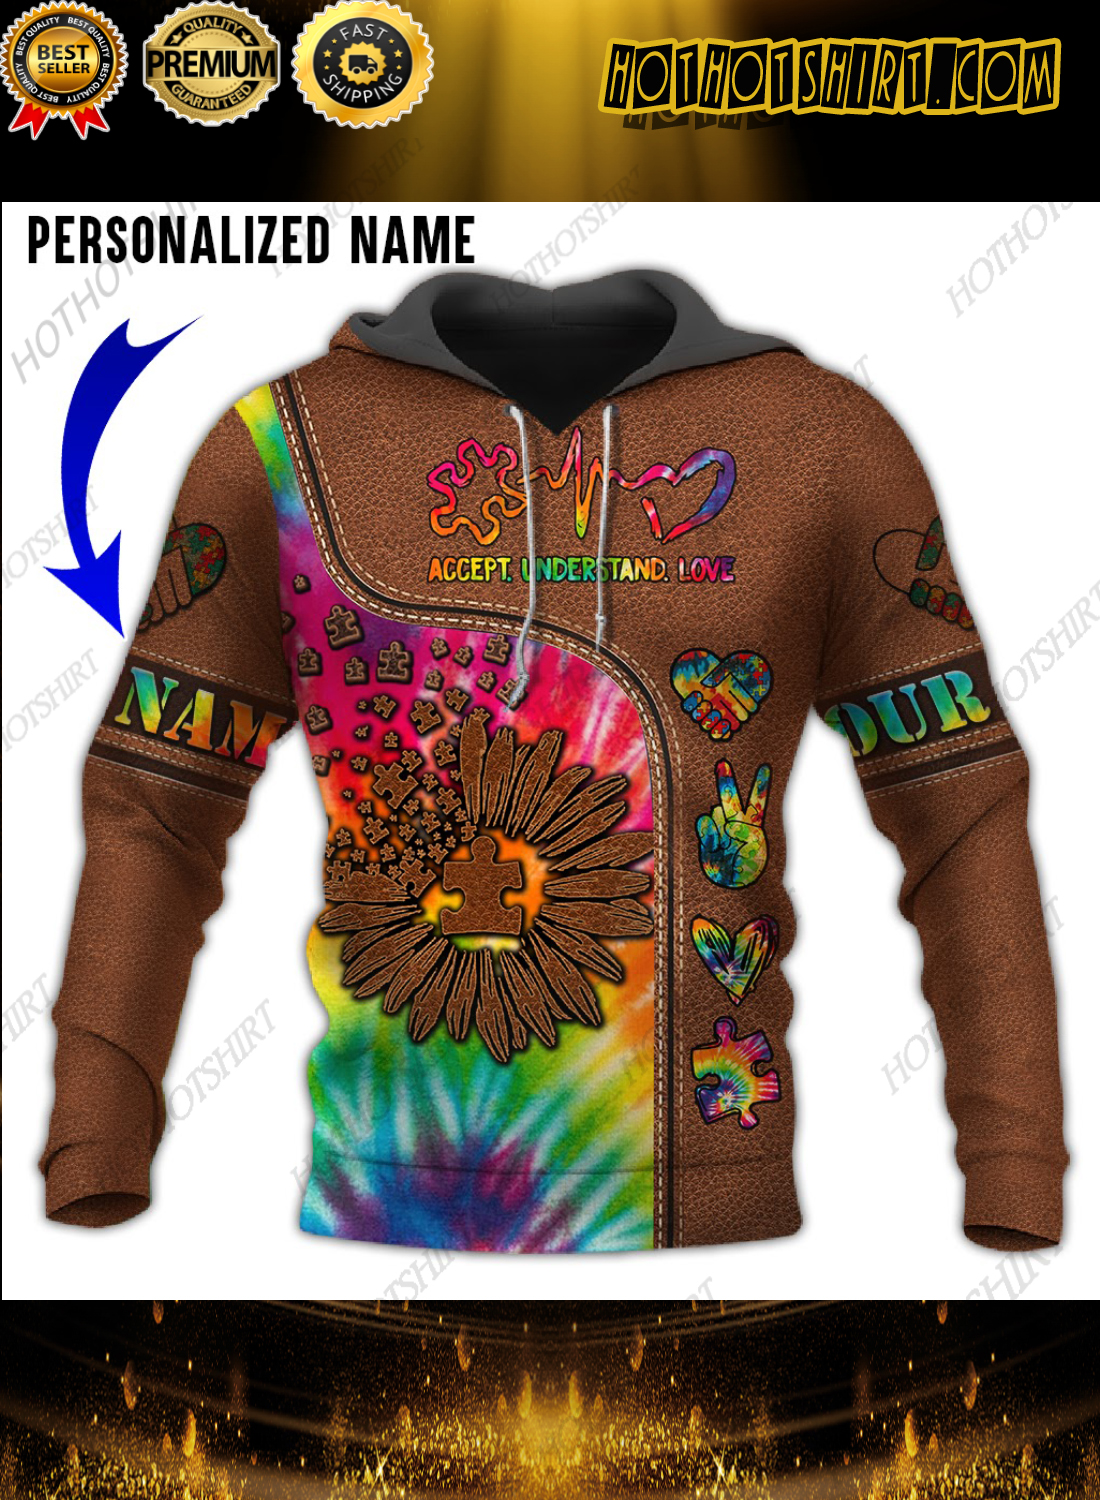 Personalized Name Autism Leather Accept Understand Love 3D Shirts